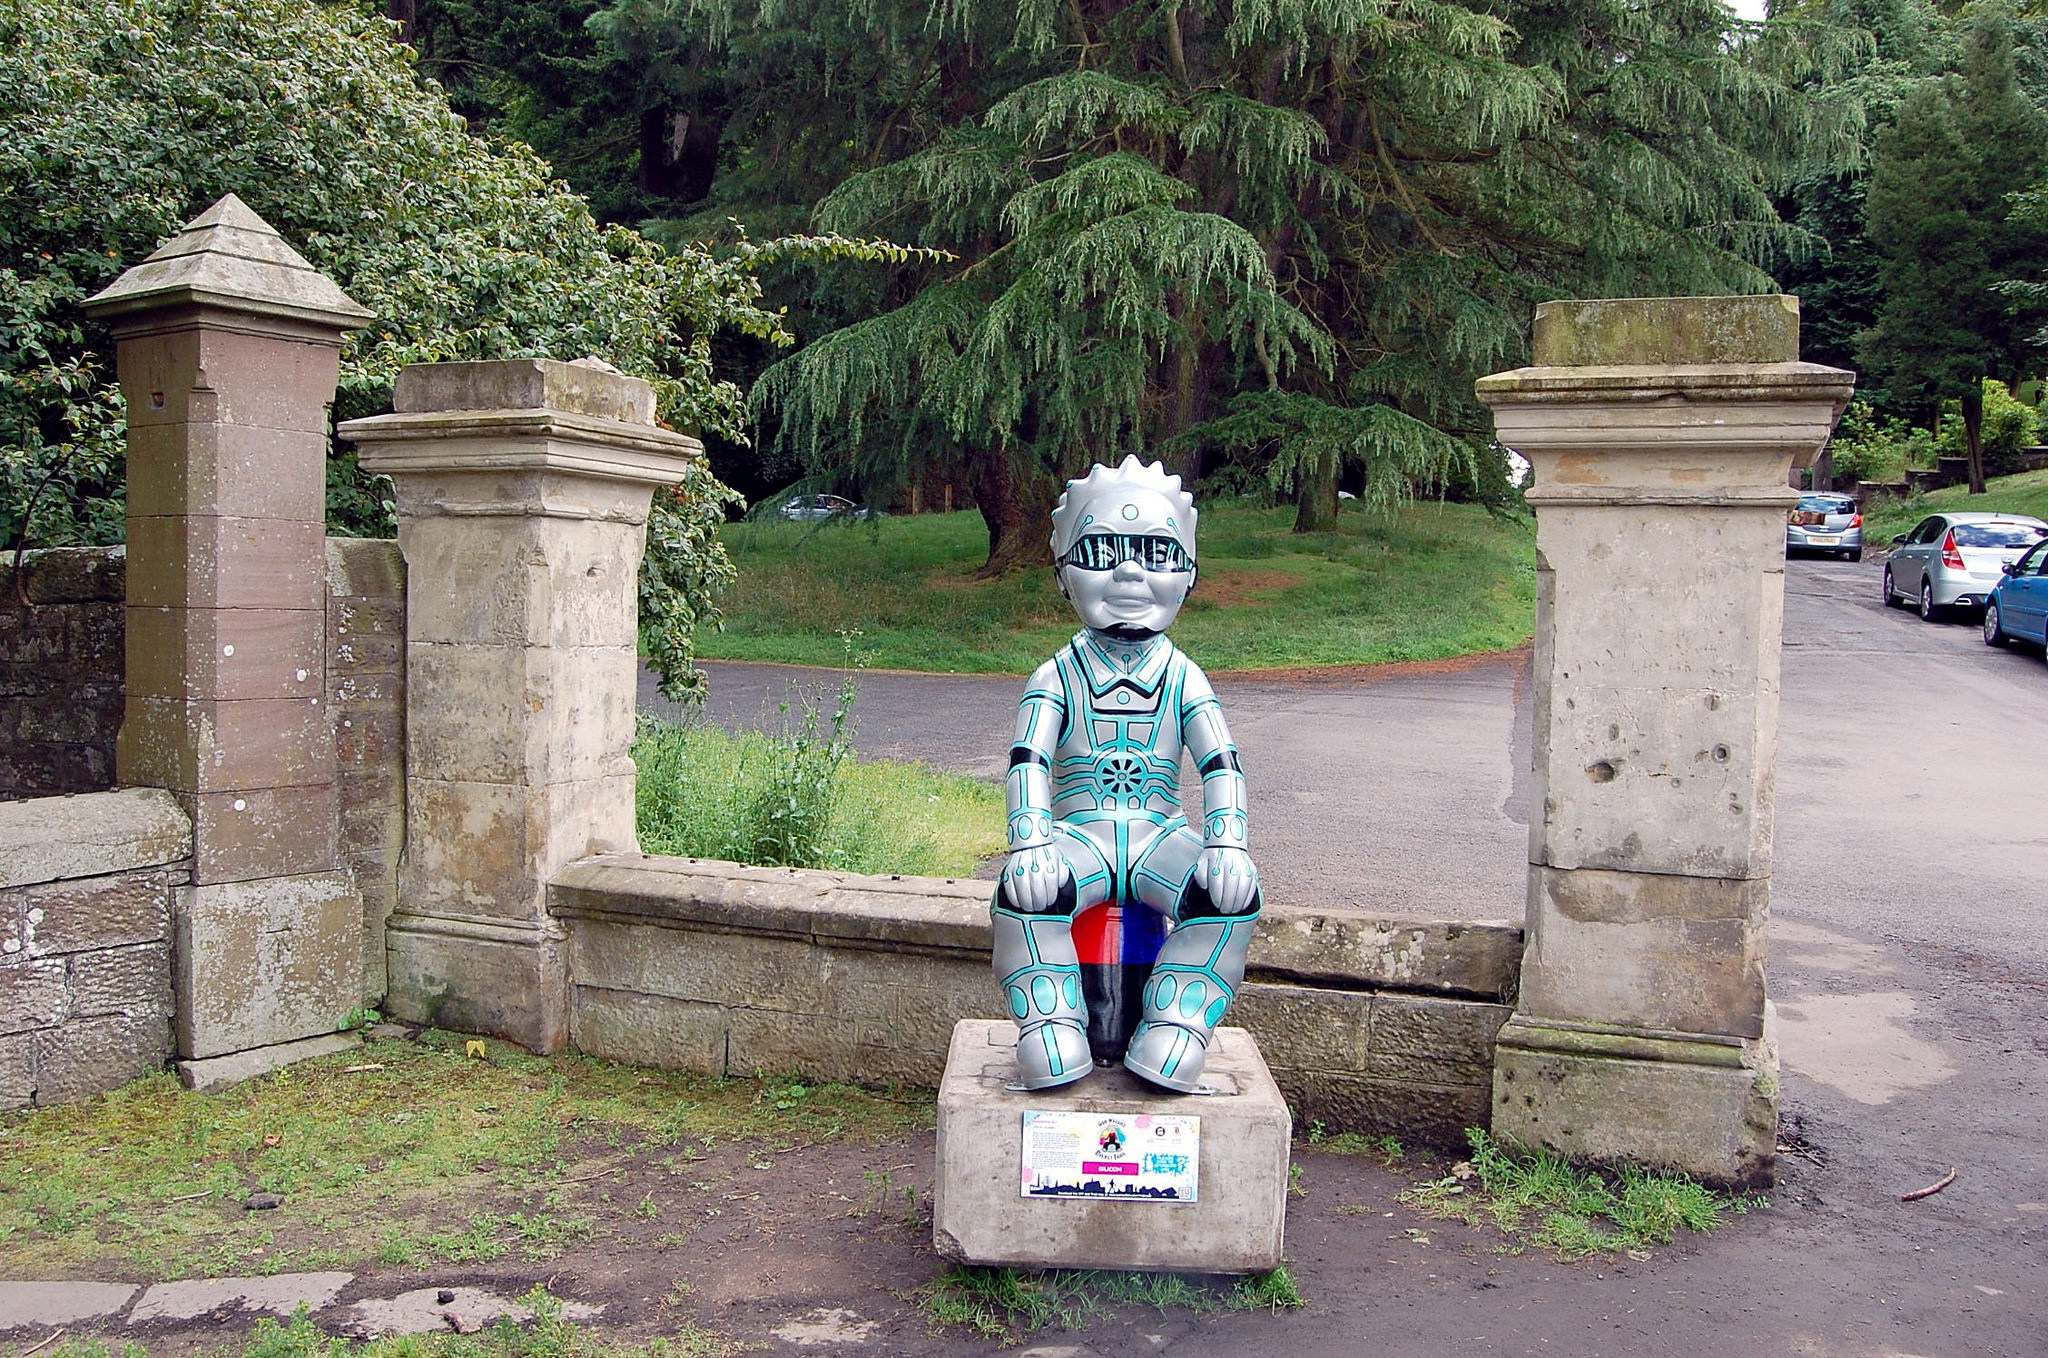 wullie21 Oor Wullie Bucket Trail in City of Dundee